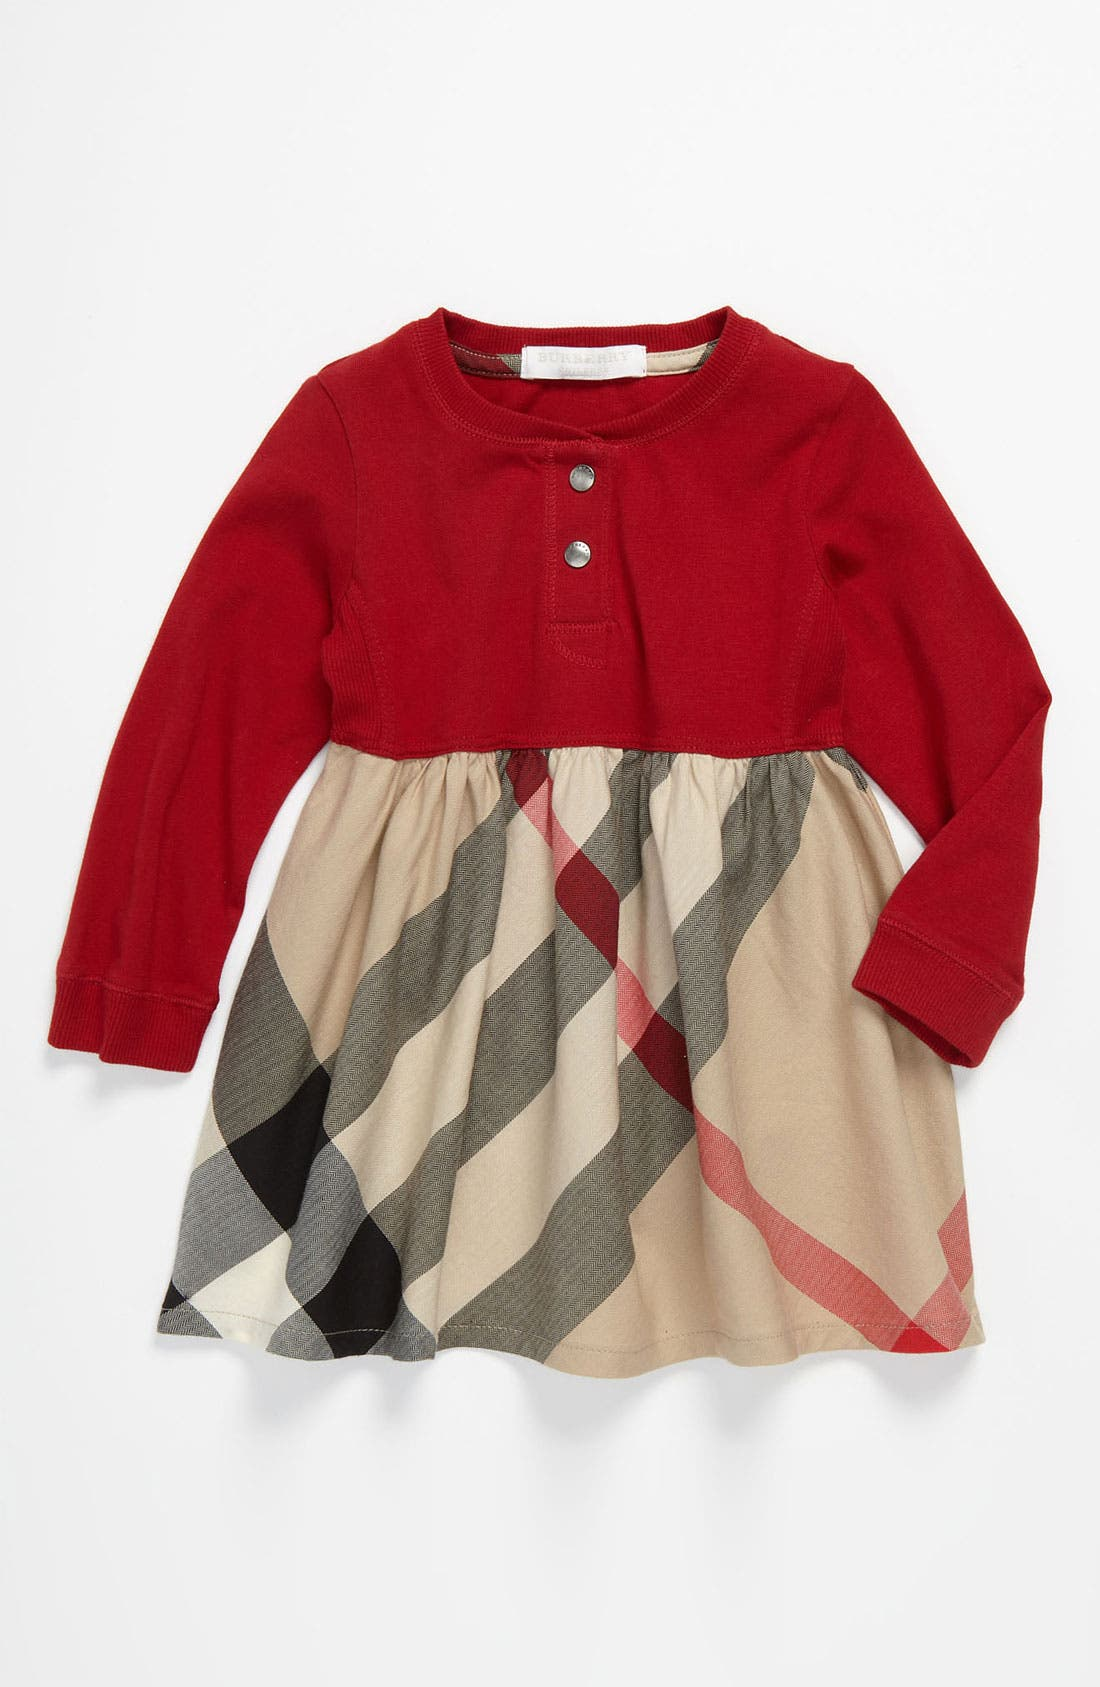 Main Image - Burberry Knit & Woven Dress (Toddler)